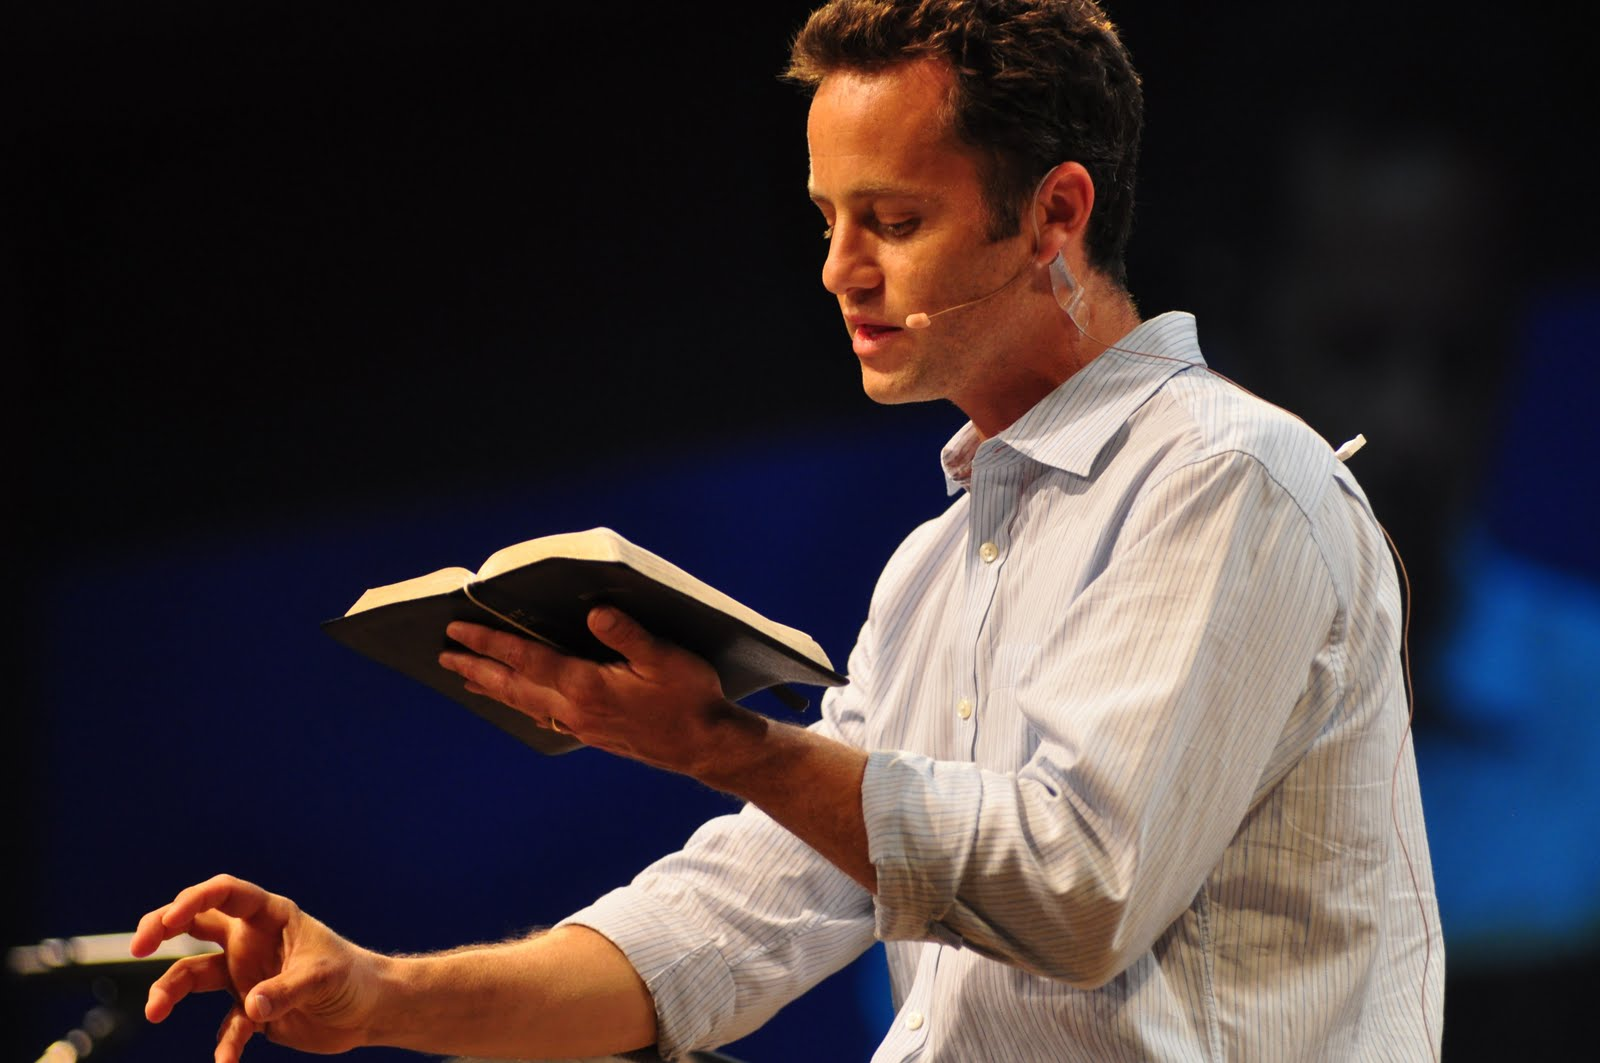 Real truth online kirk cameron criticizes stephen hawking saying he